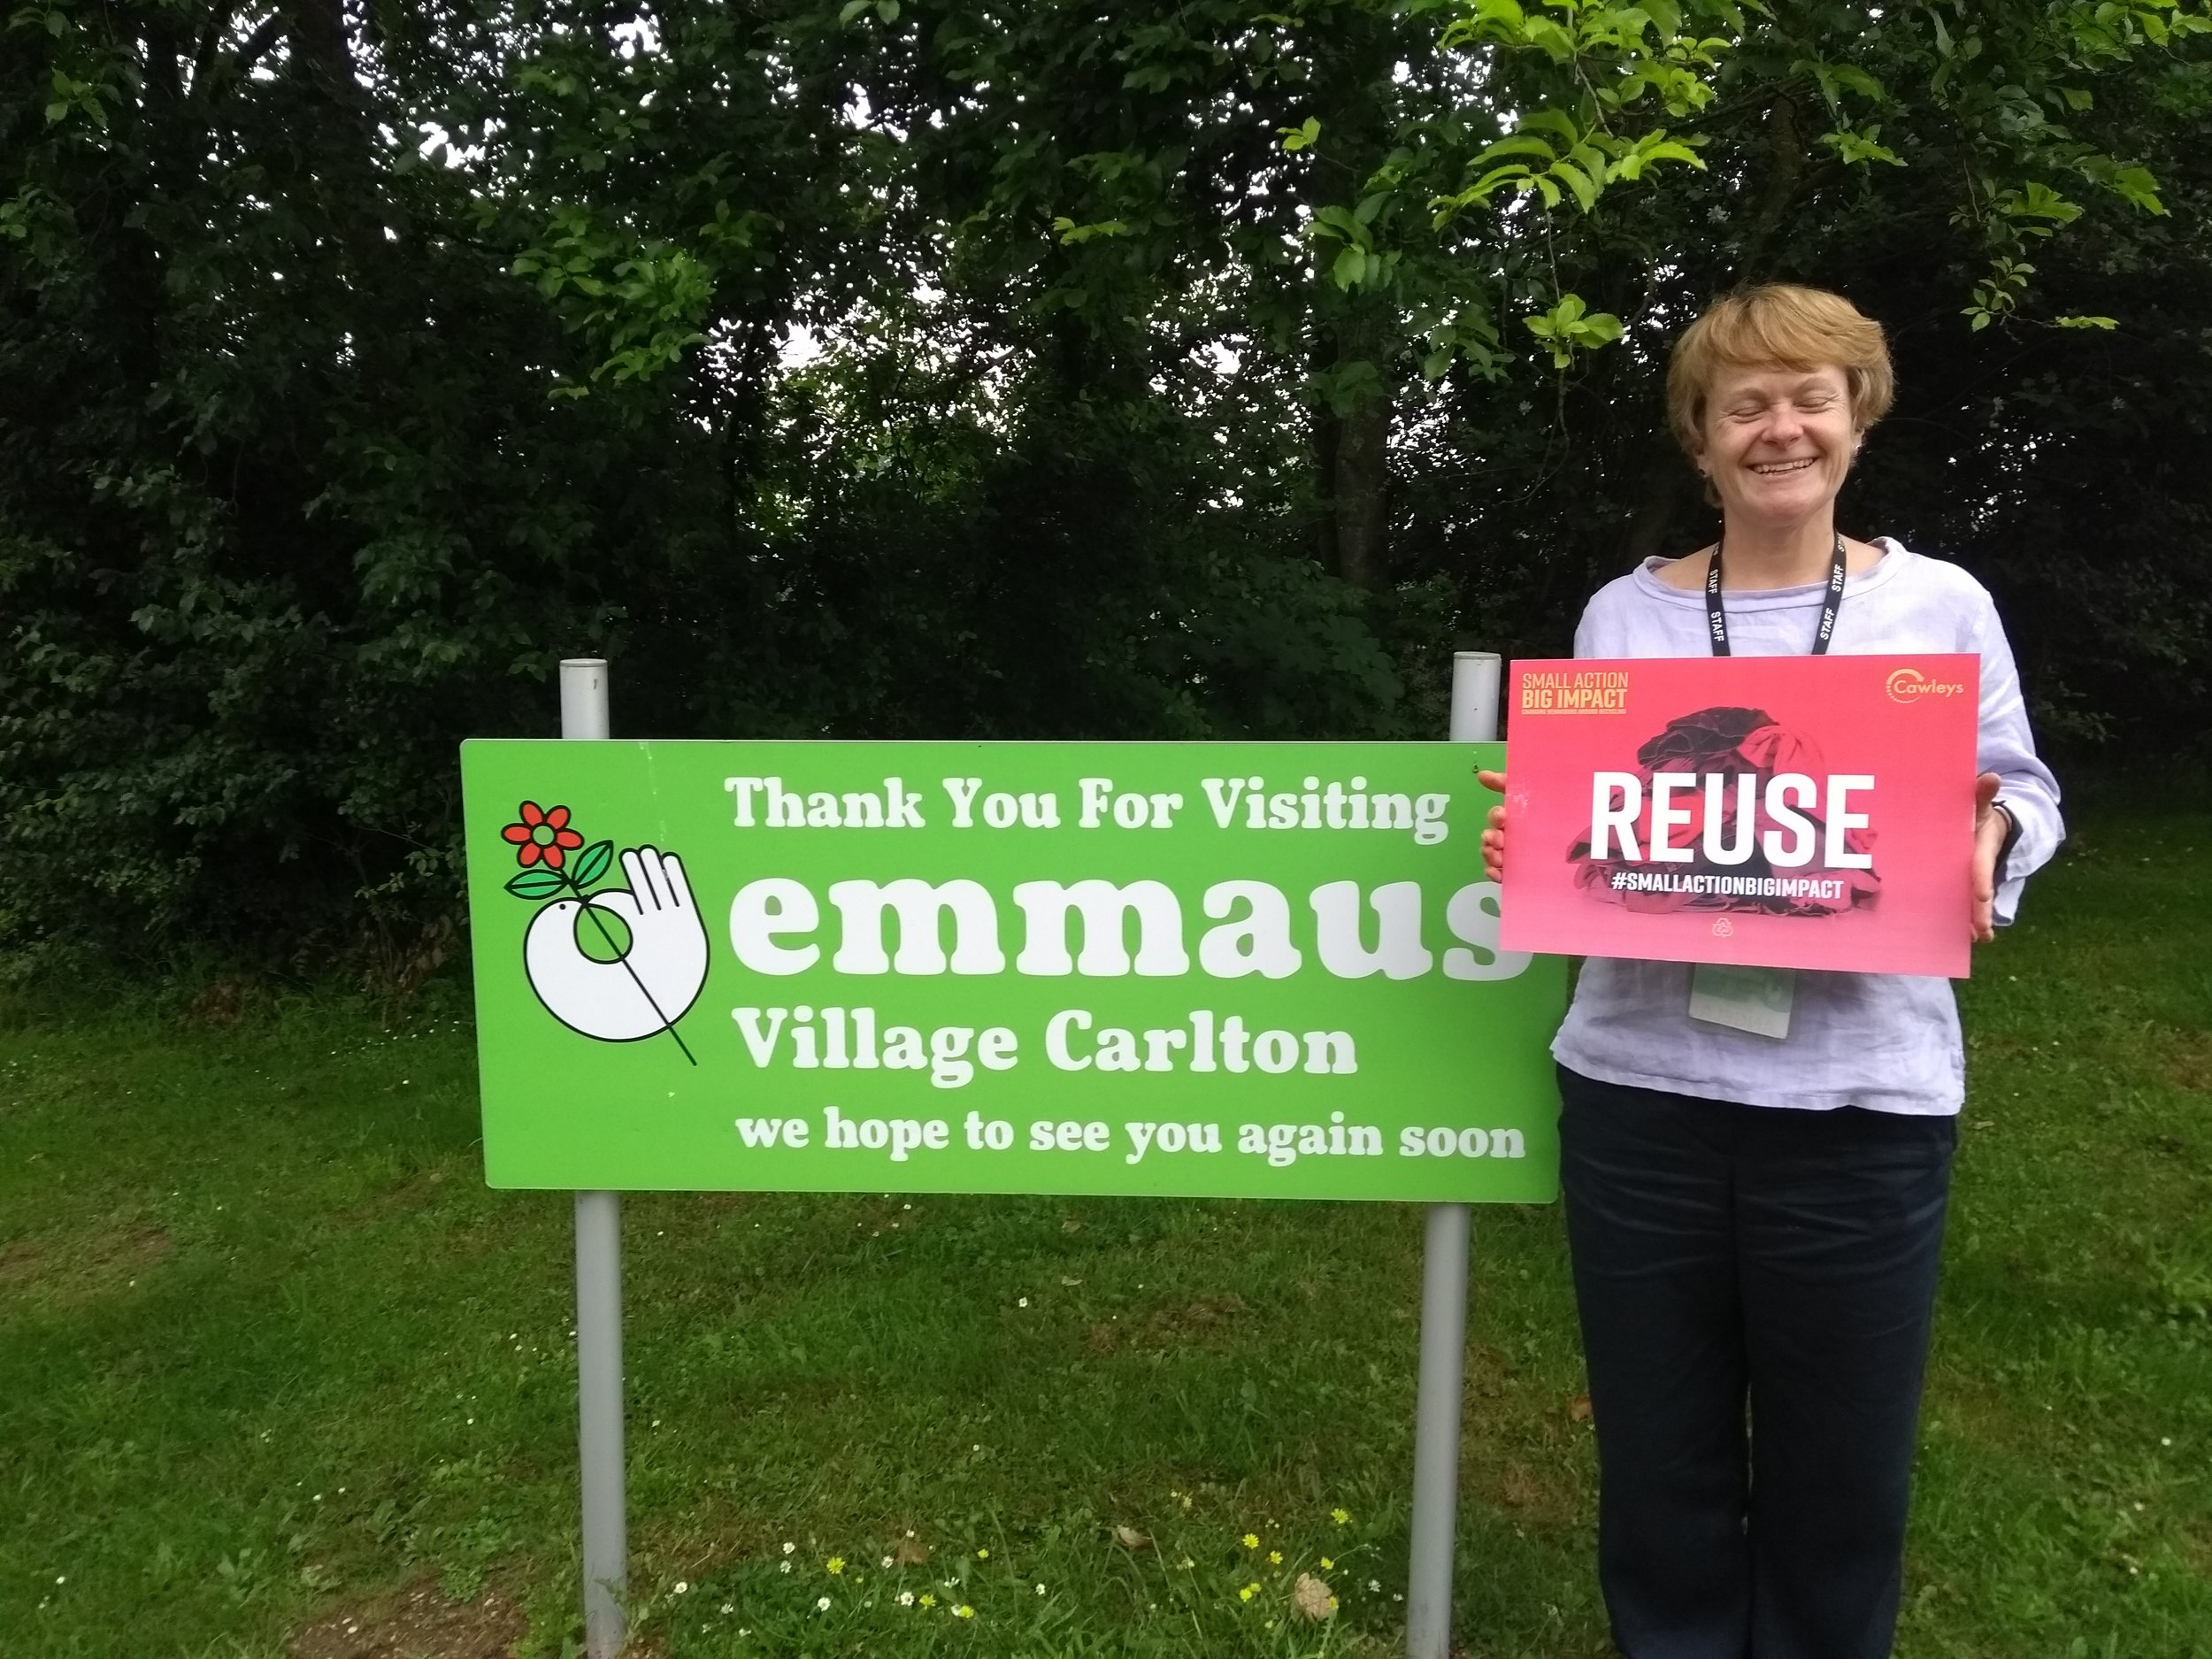 This month we have partnered with Emmaus. - Angela Foll the Community Director of Emmaus Village Carlton pictured here, pledging to Reuse.